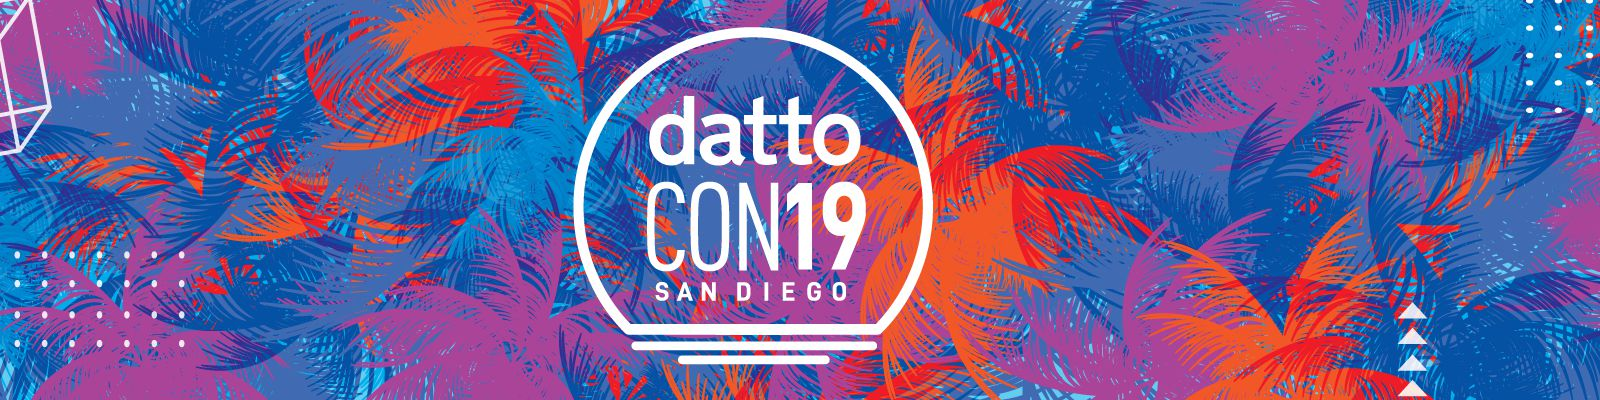 DattoCon19 San Diego Boot Camps are LIVE!